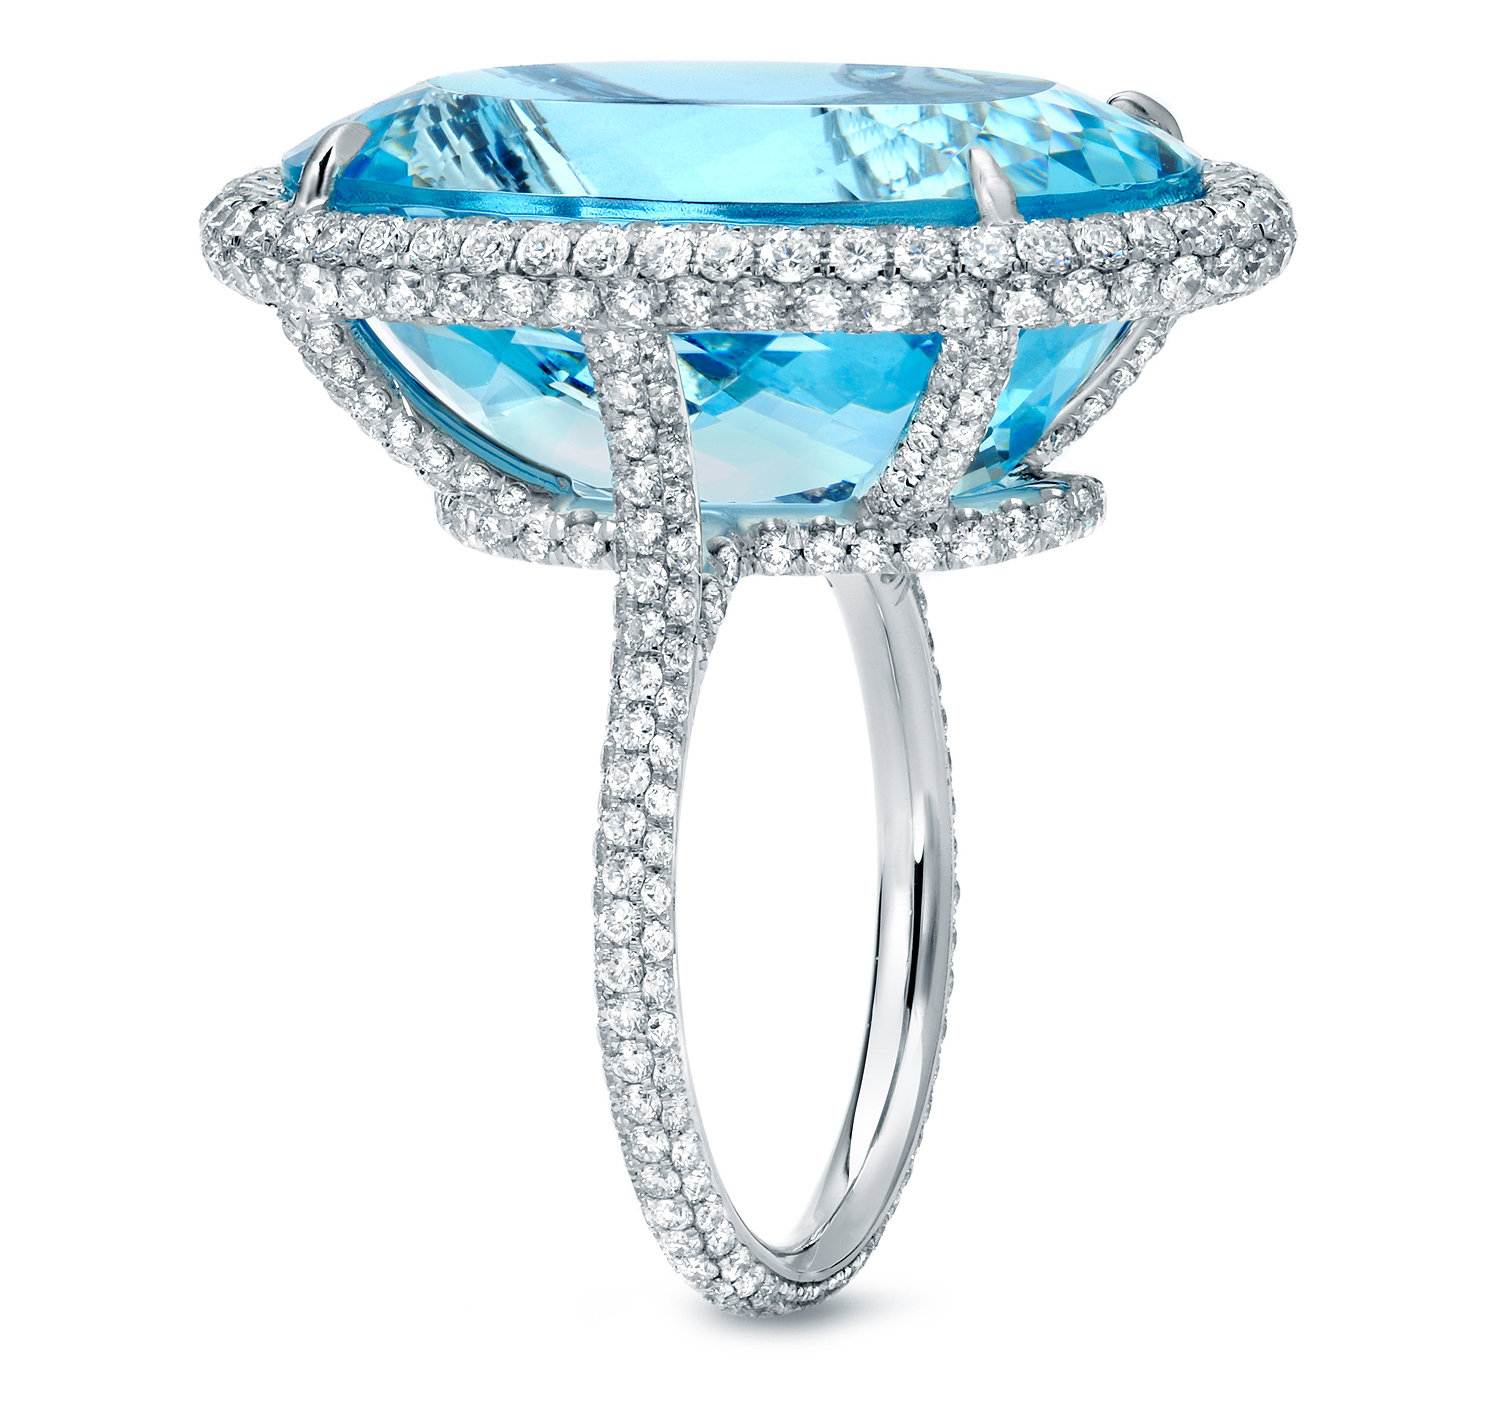 Tamir aquamarine and diamond cocktail ring | JCK On Your Market